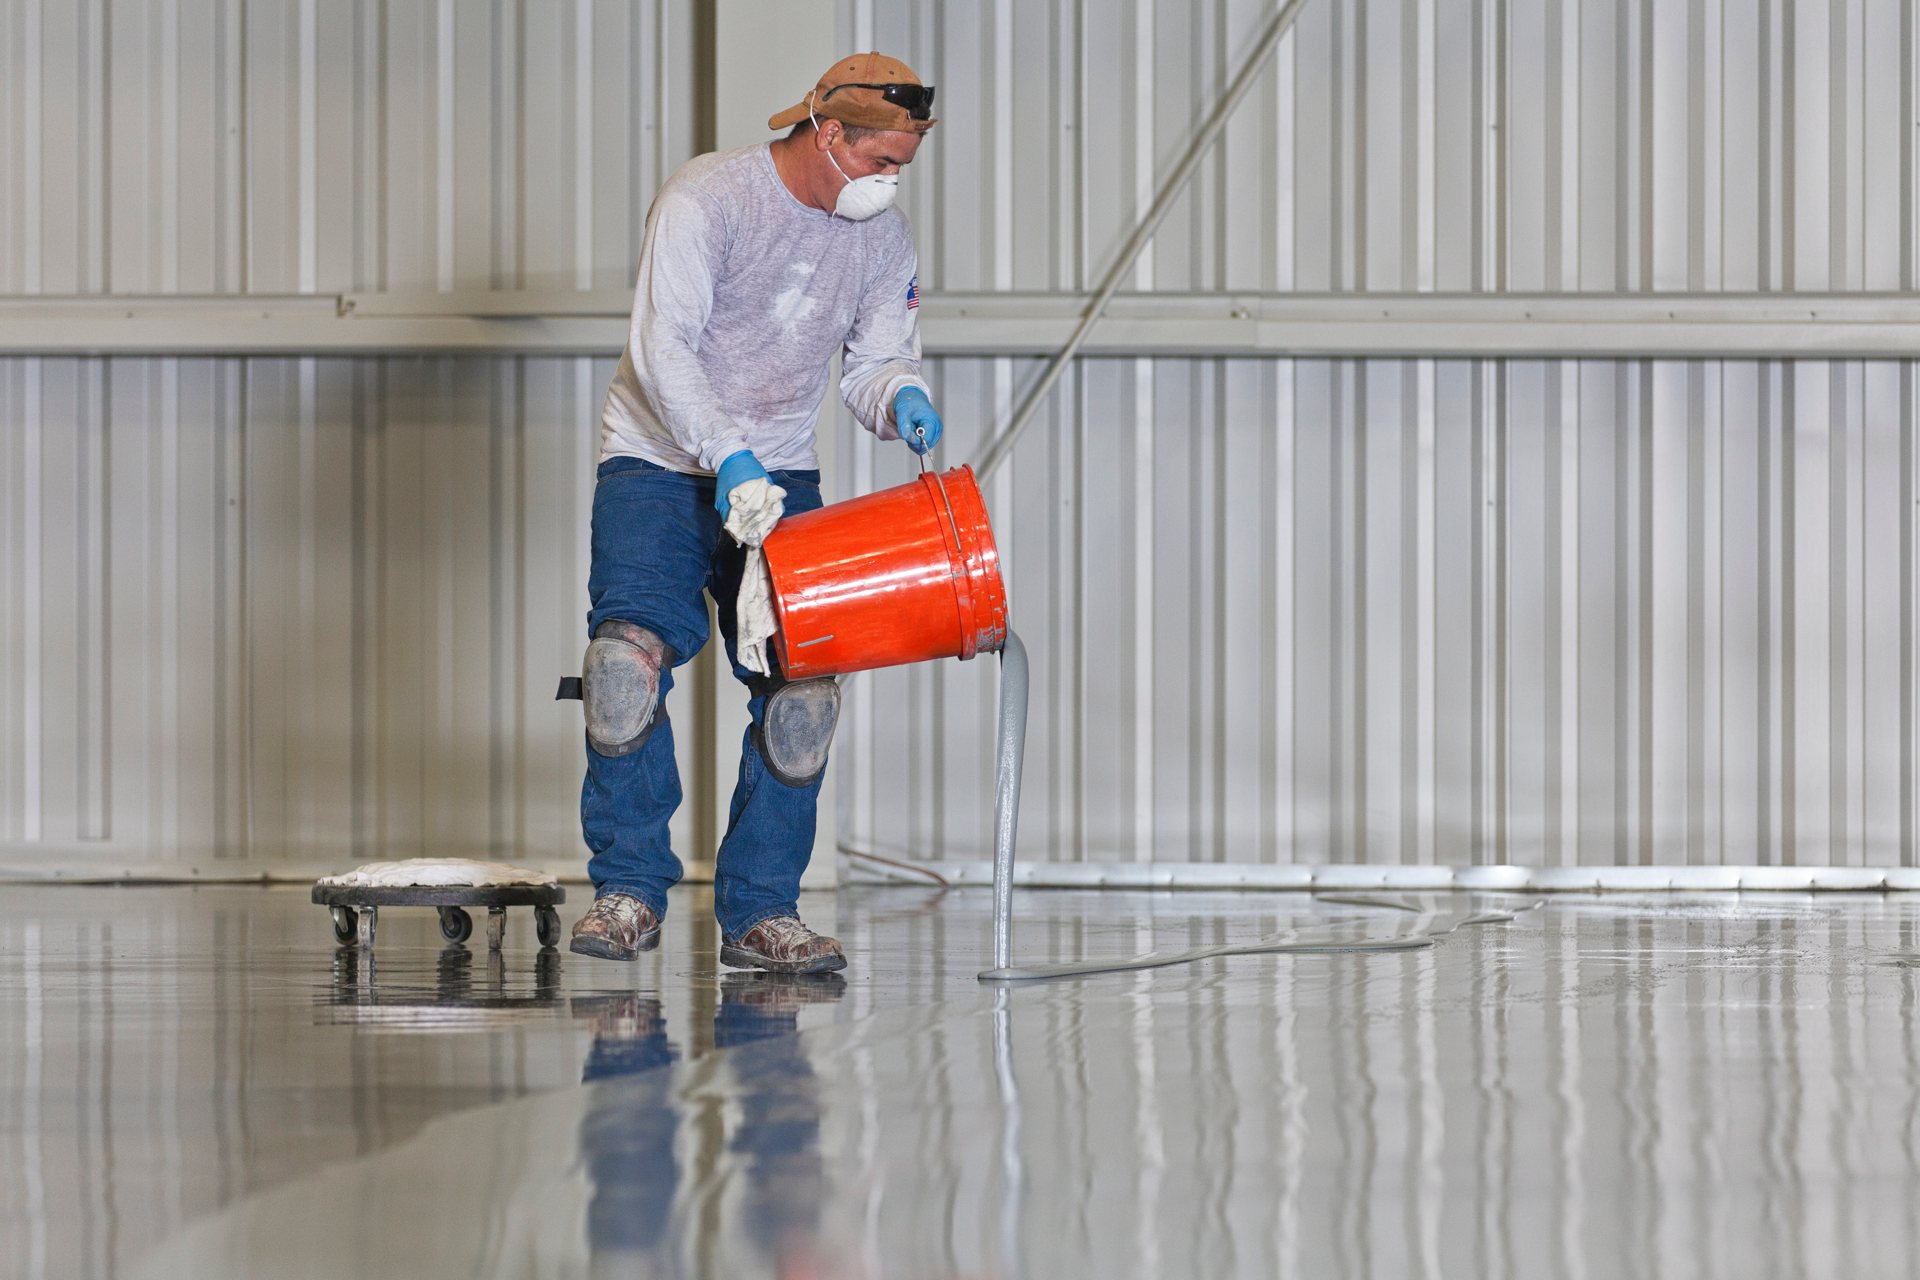 Epoxy scraping layer – Everything you should know